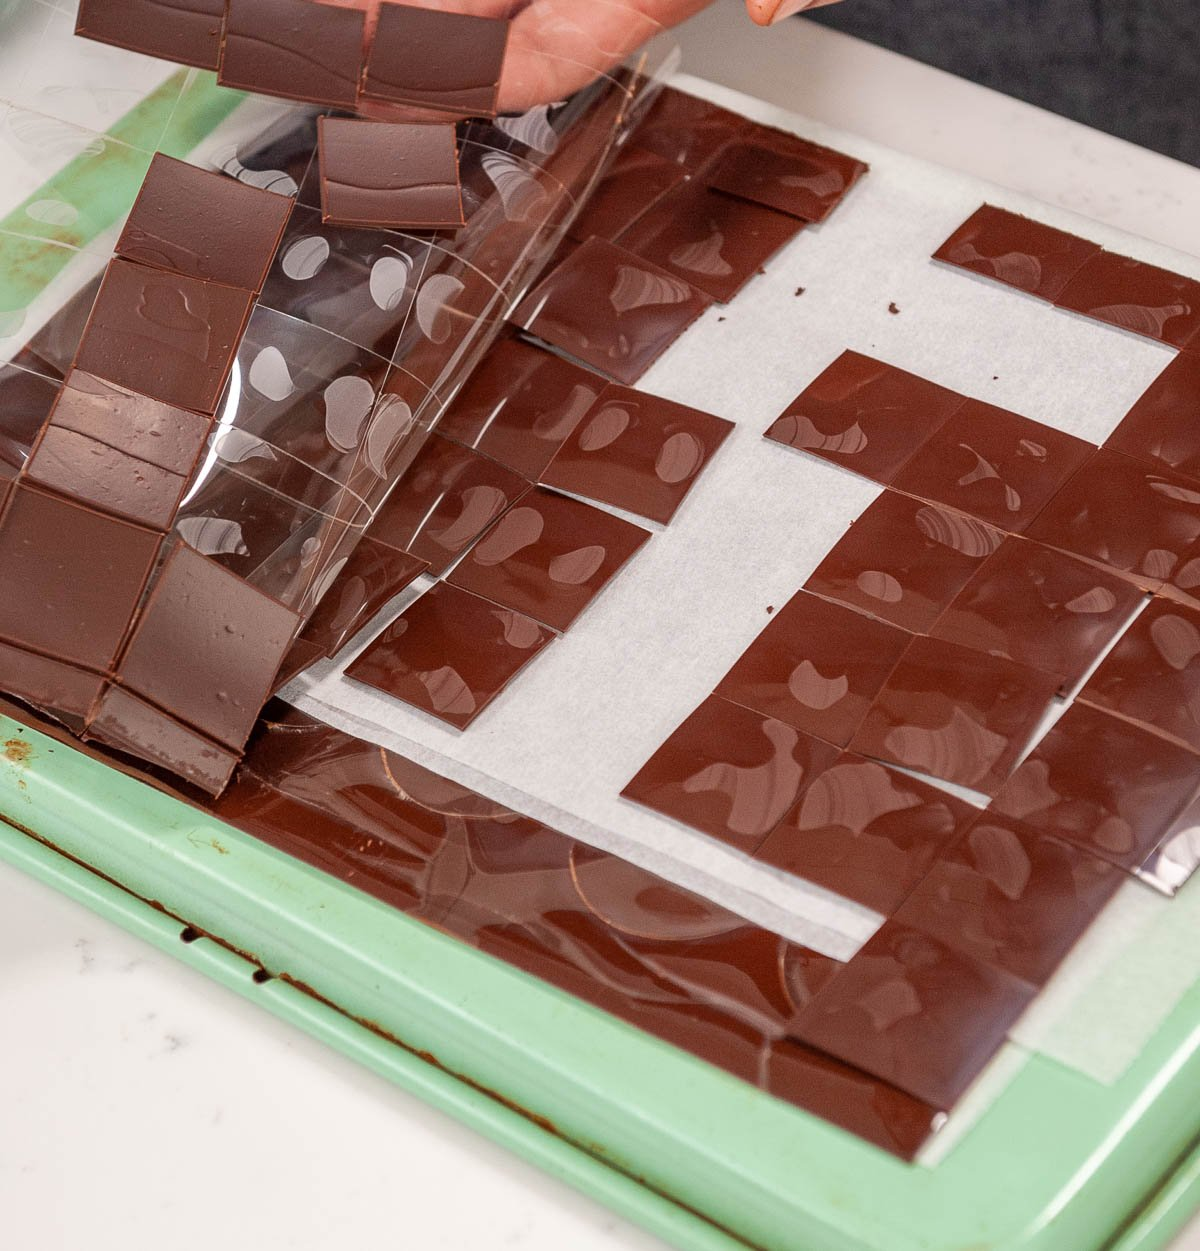 removing chocolate squares from acetate